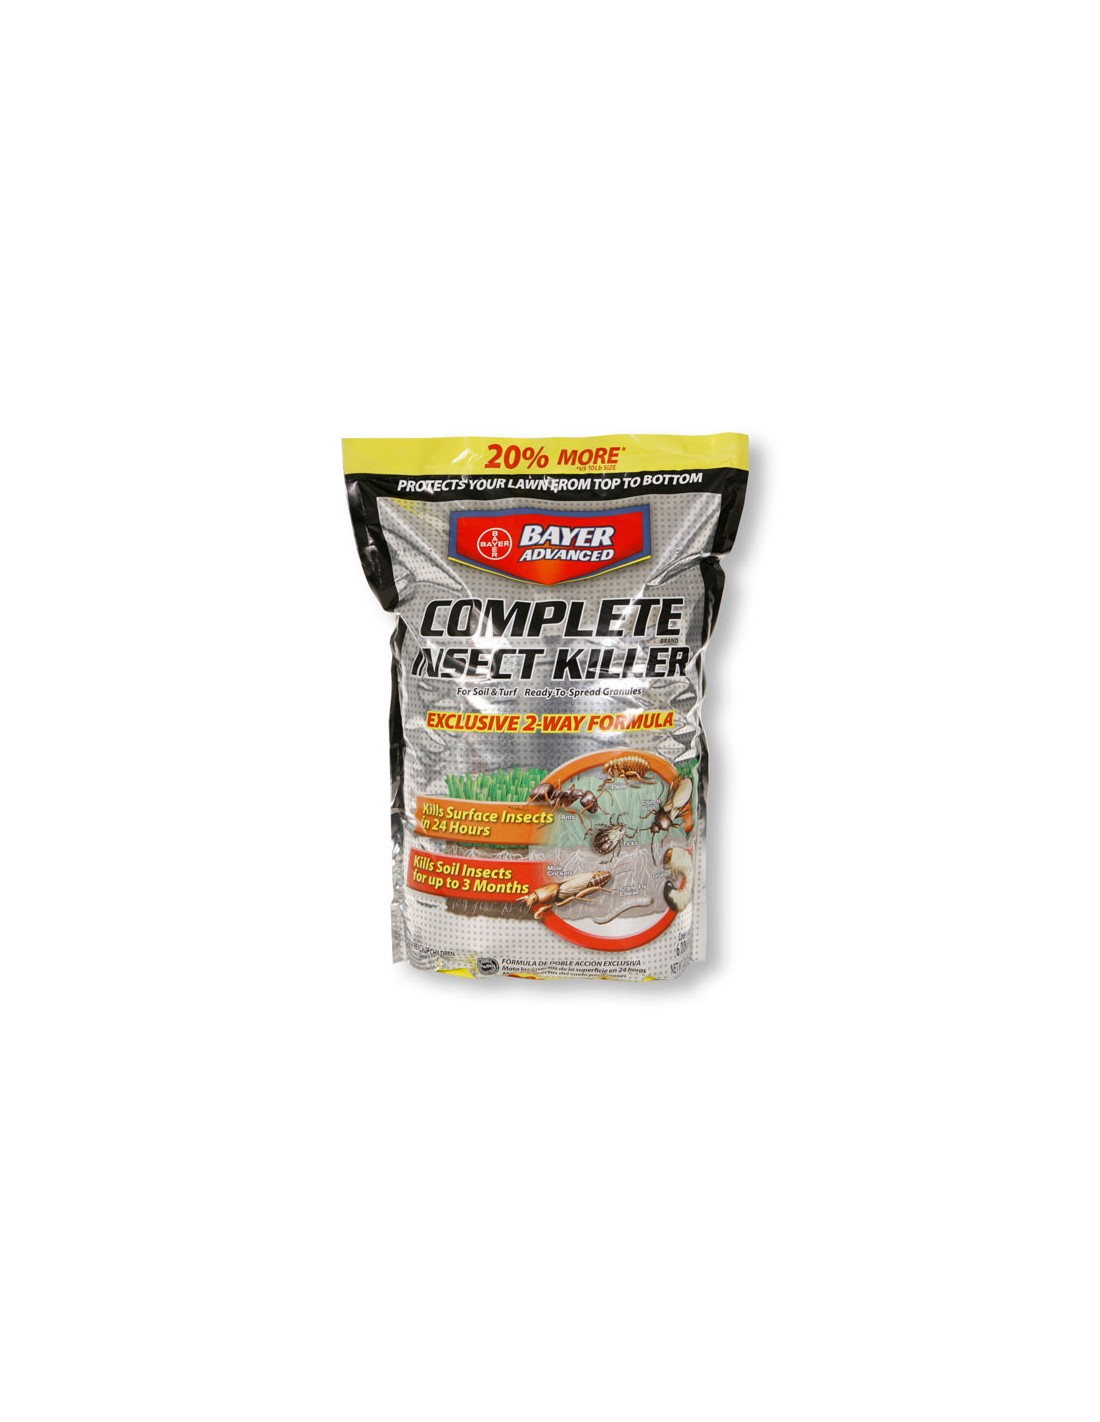 How long before my dog can enter an area treated with Bauer advance pesticide